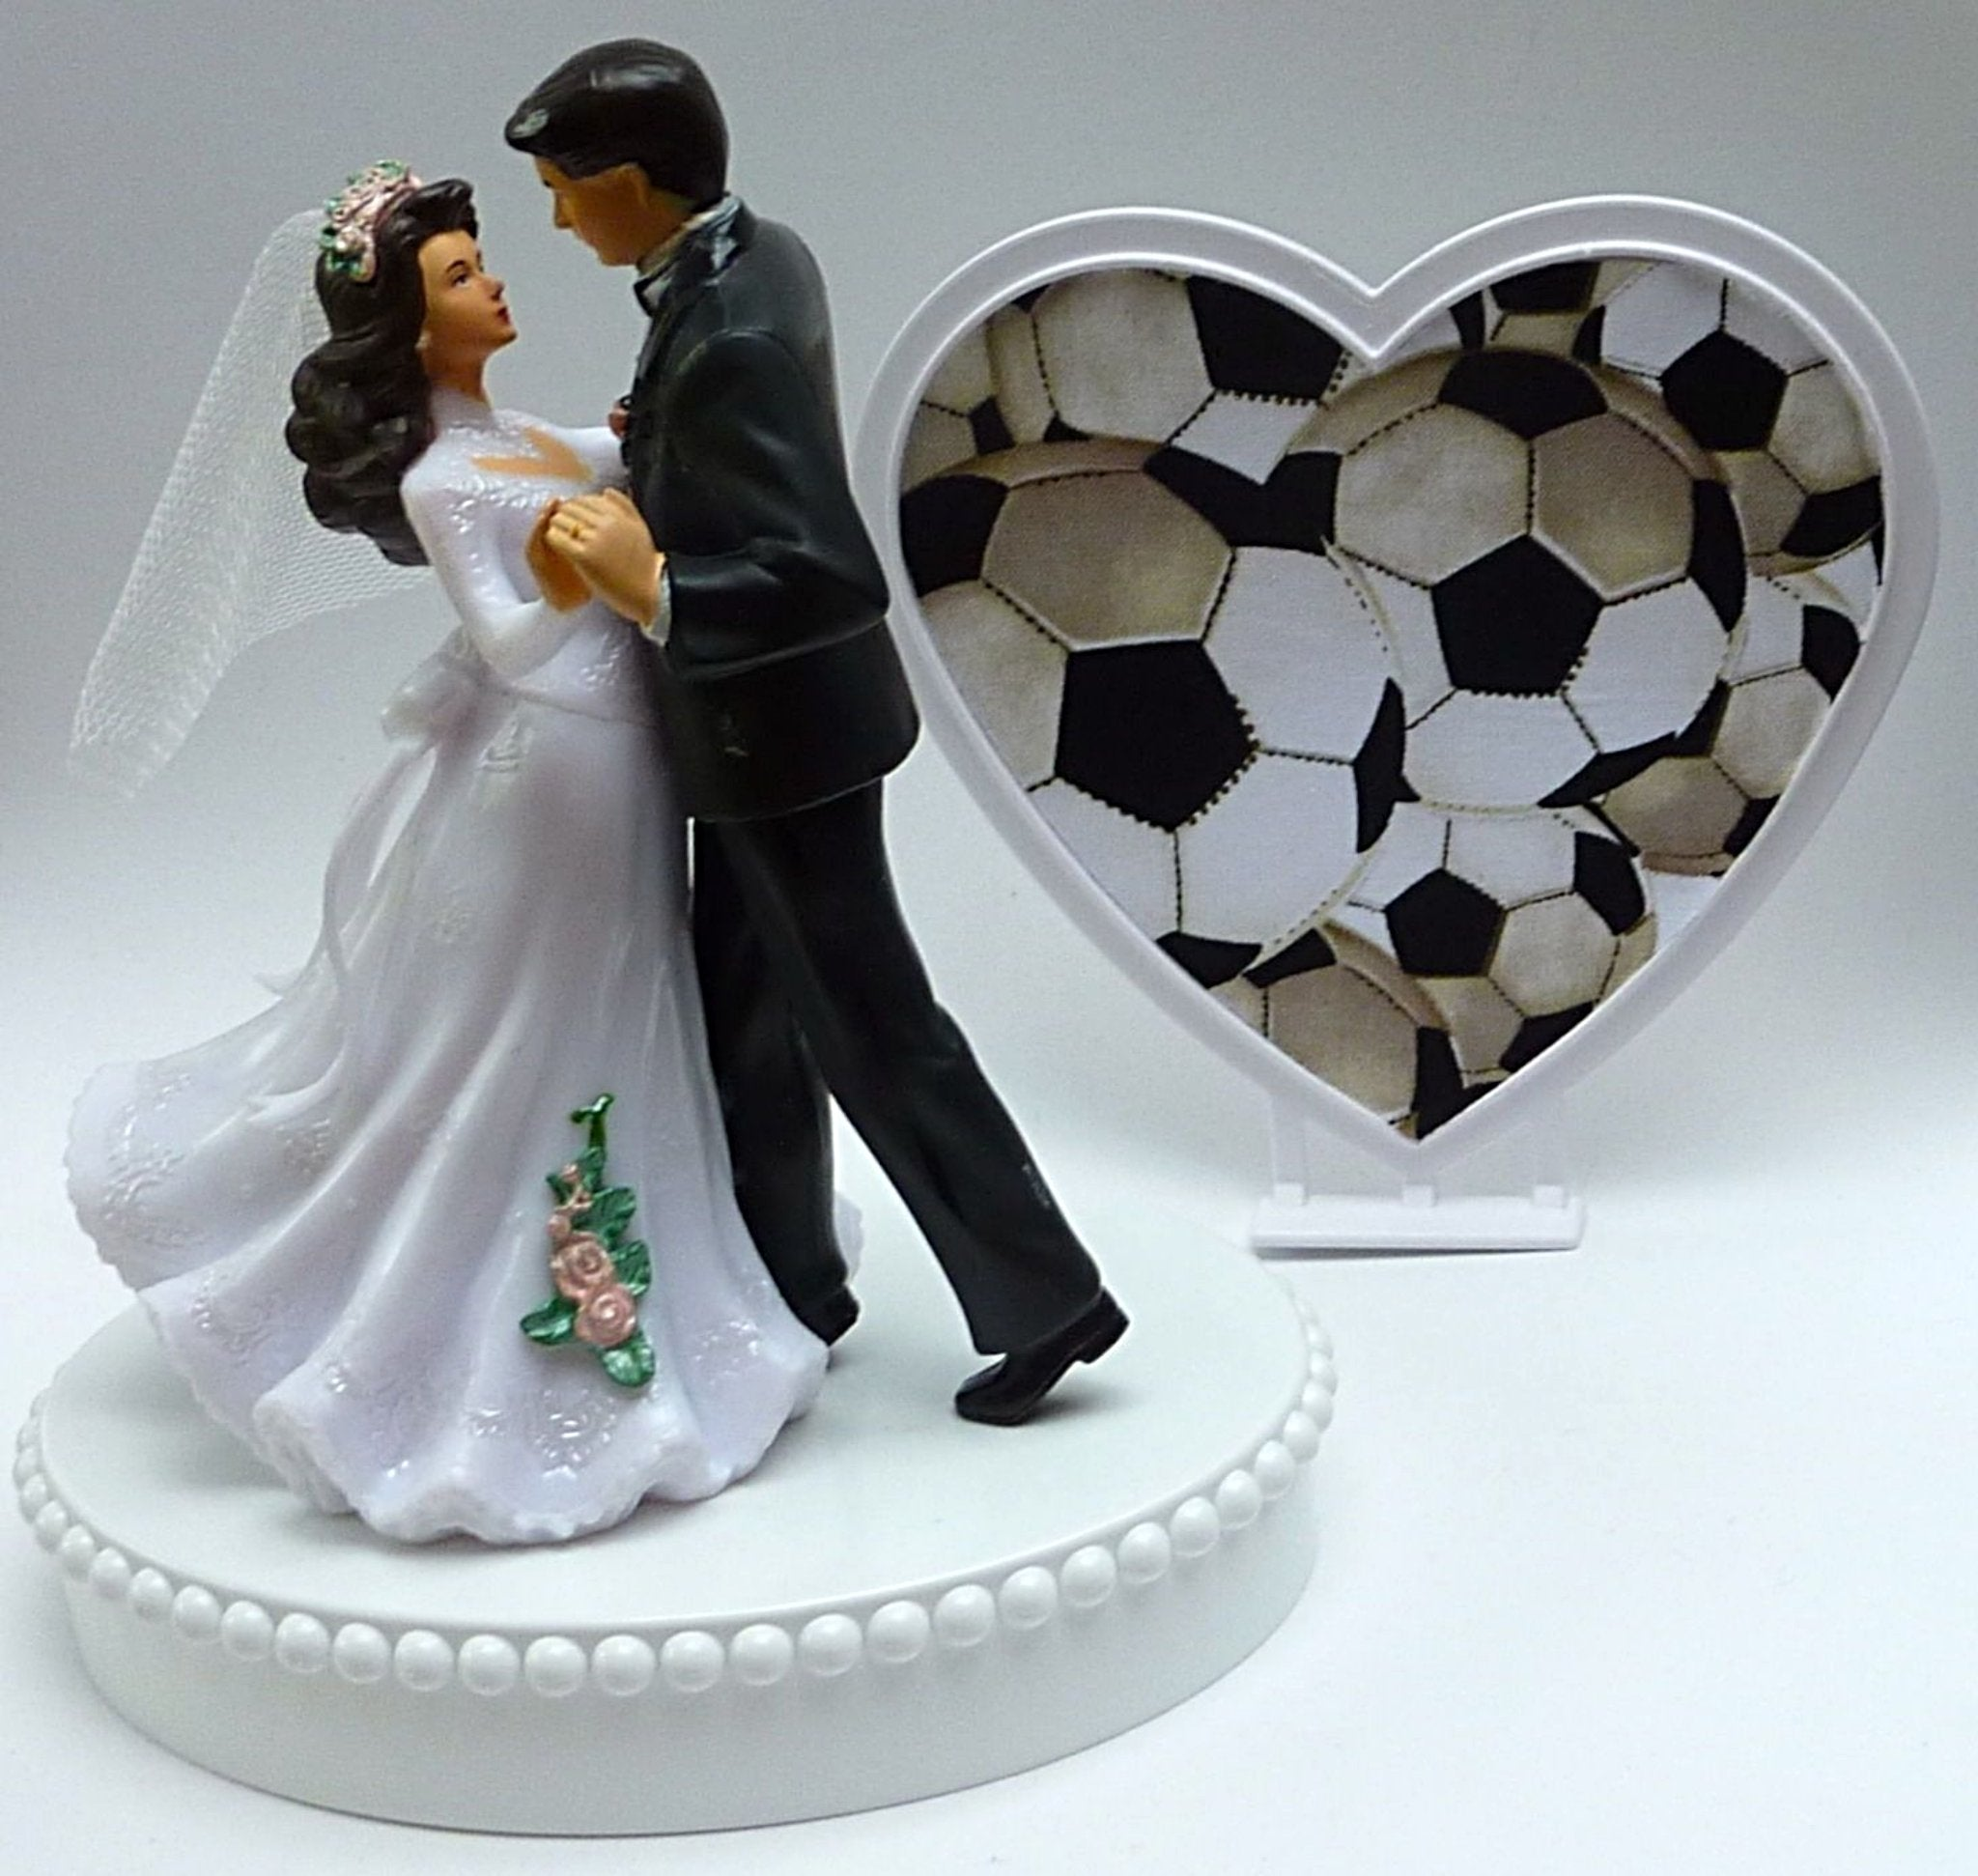 Soccer wedding cake topper bride groom's cake top dancing ball heart pretty reception gift idea Fun Wedding Things